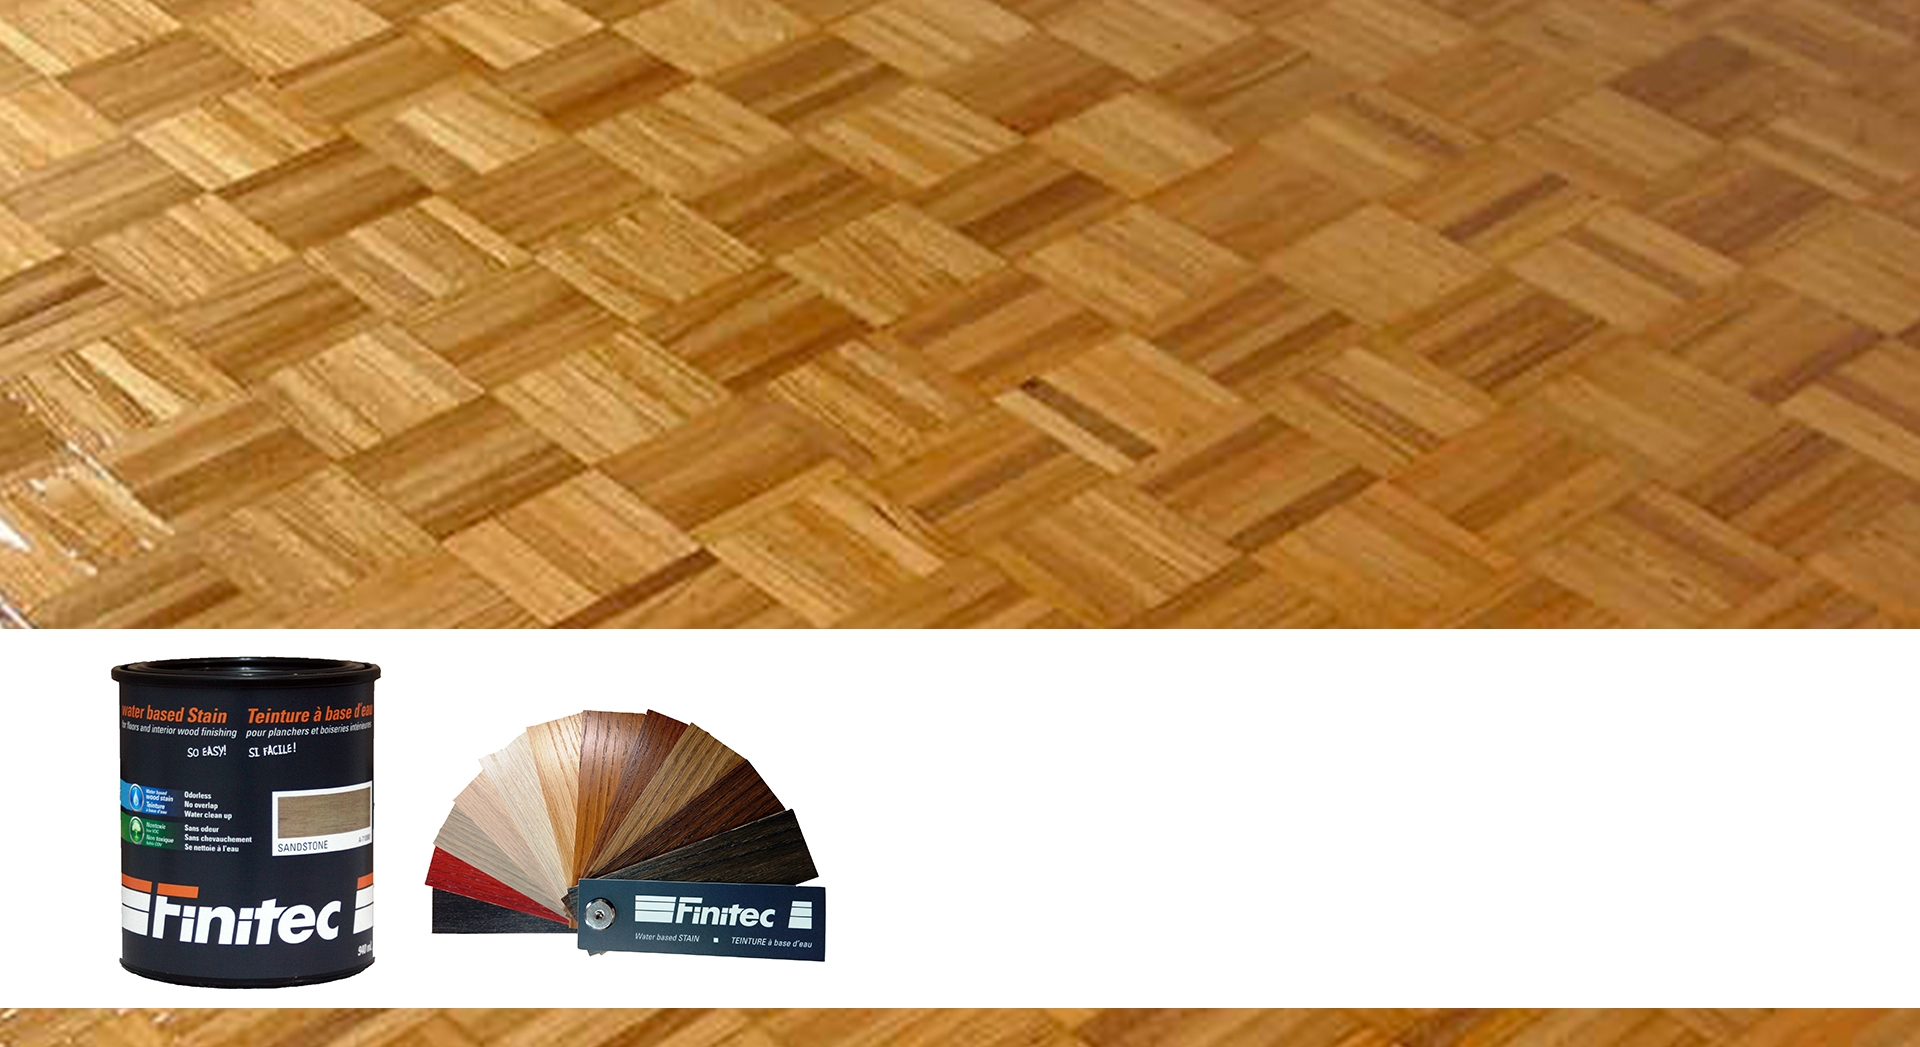 Tired of your parquet flooring? Give it a brand new look